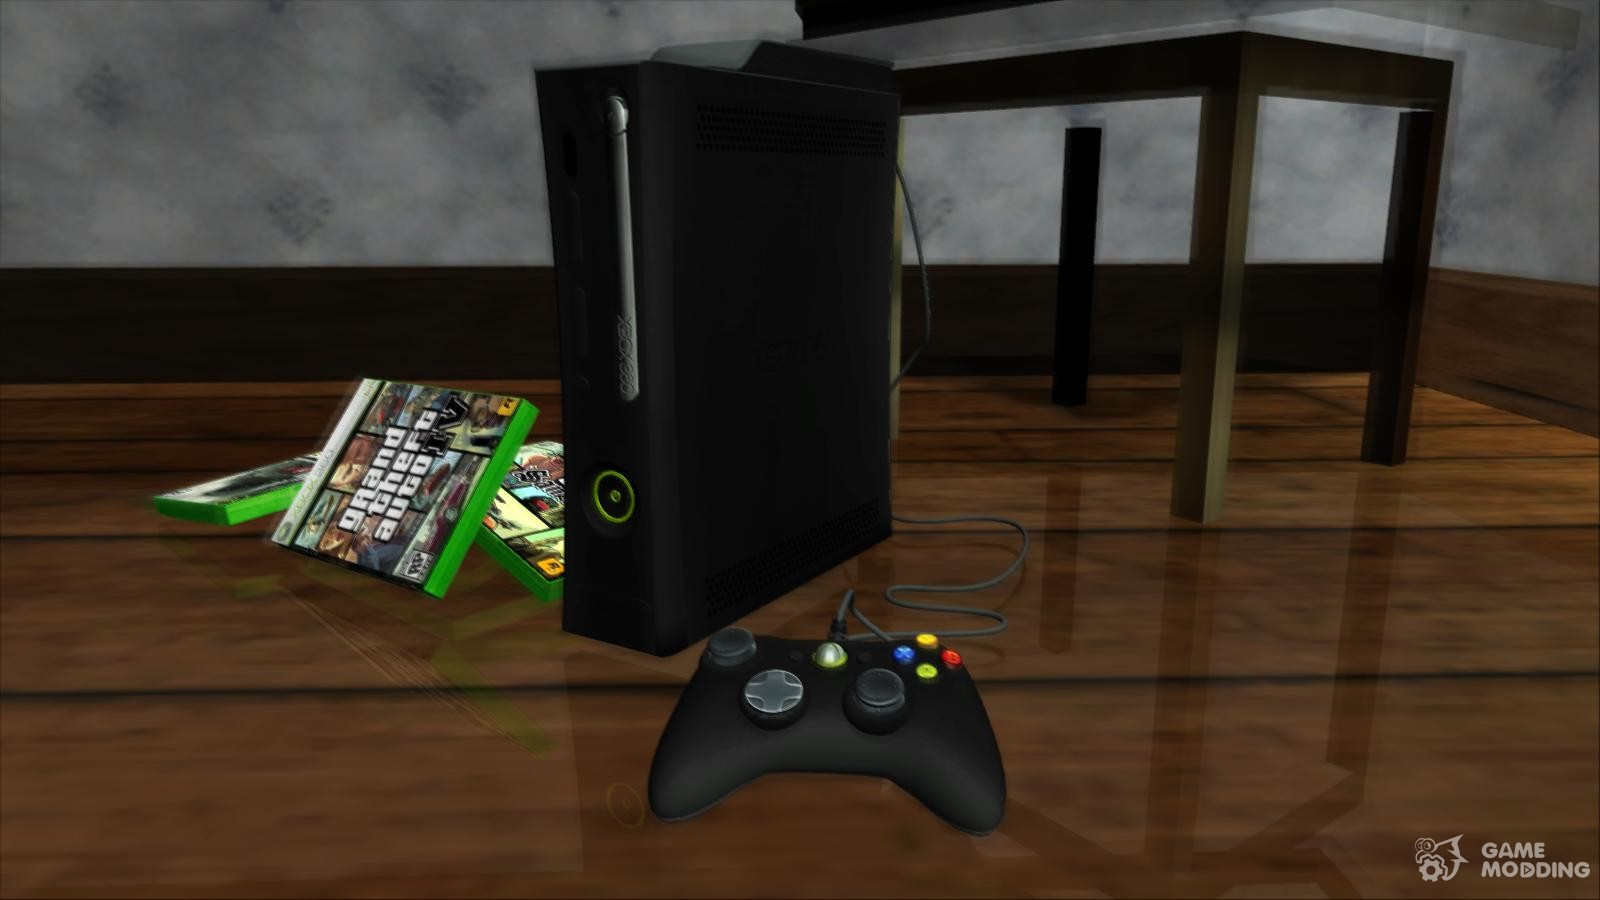 how to get mods on xbox 360